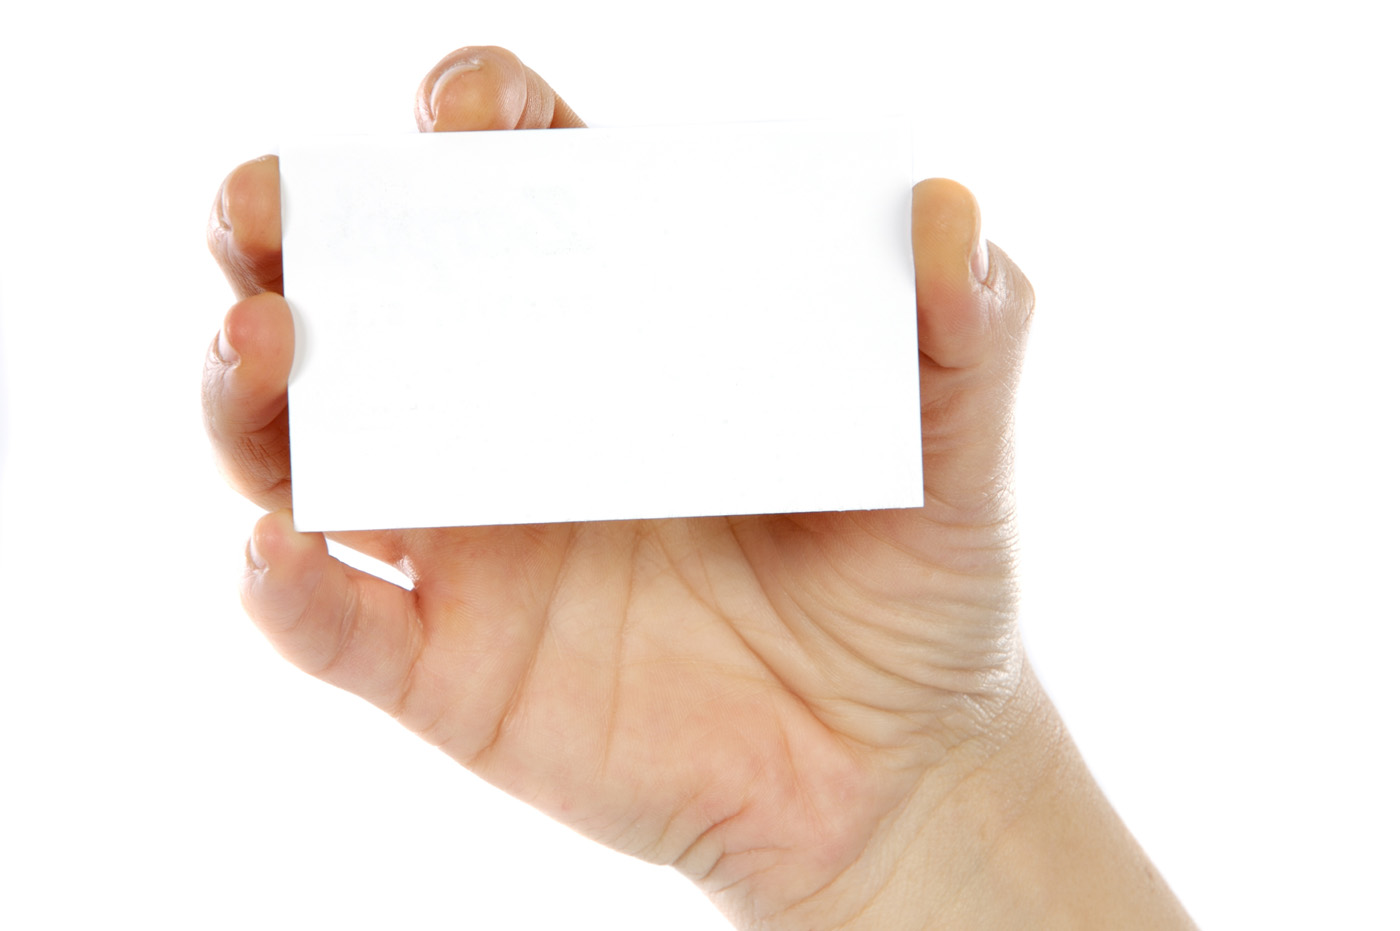 Holding blank card 26004